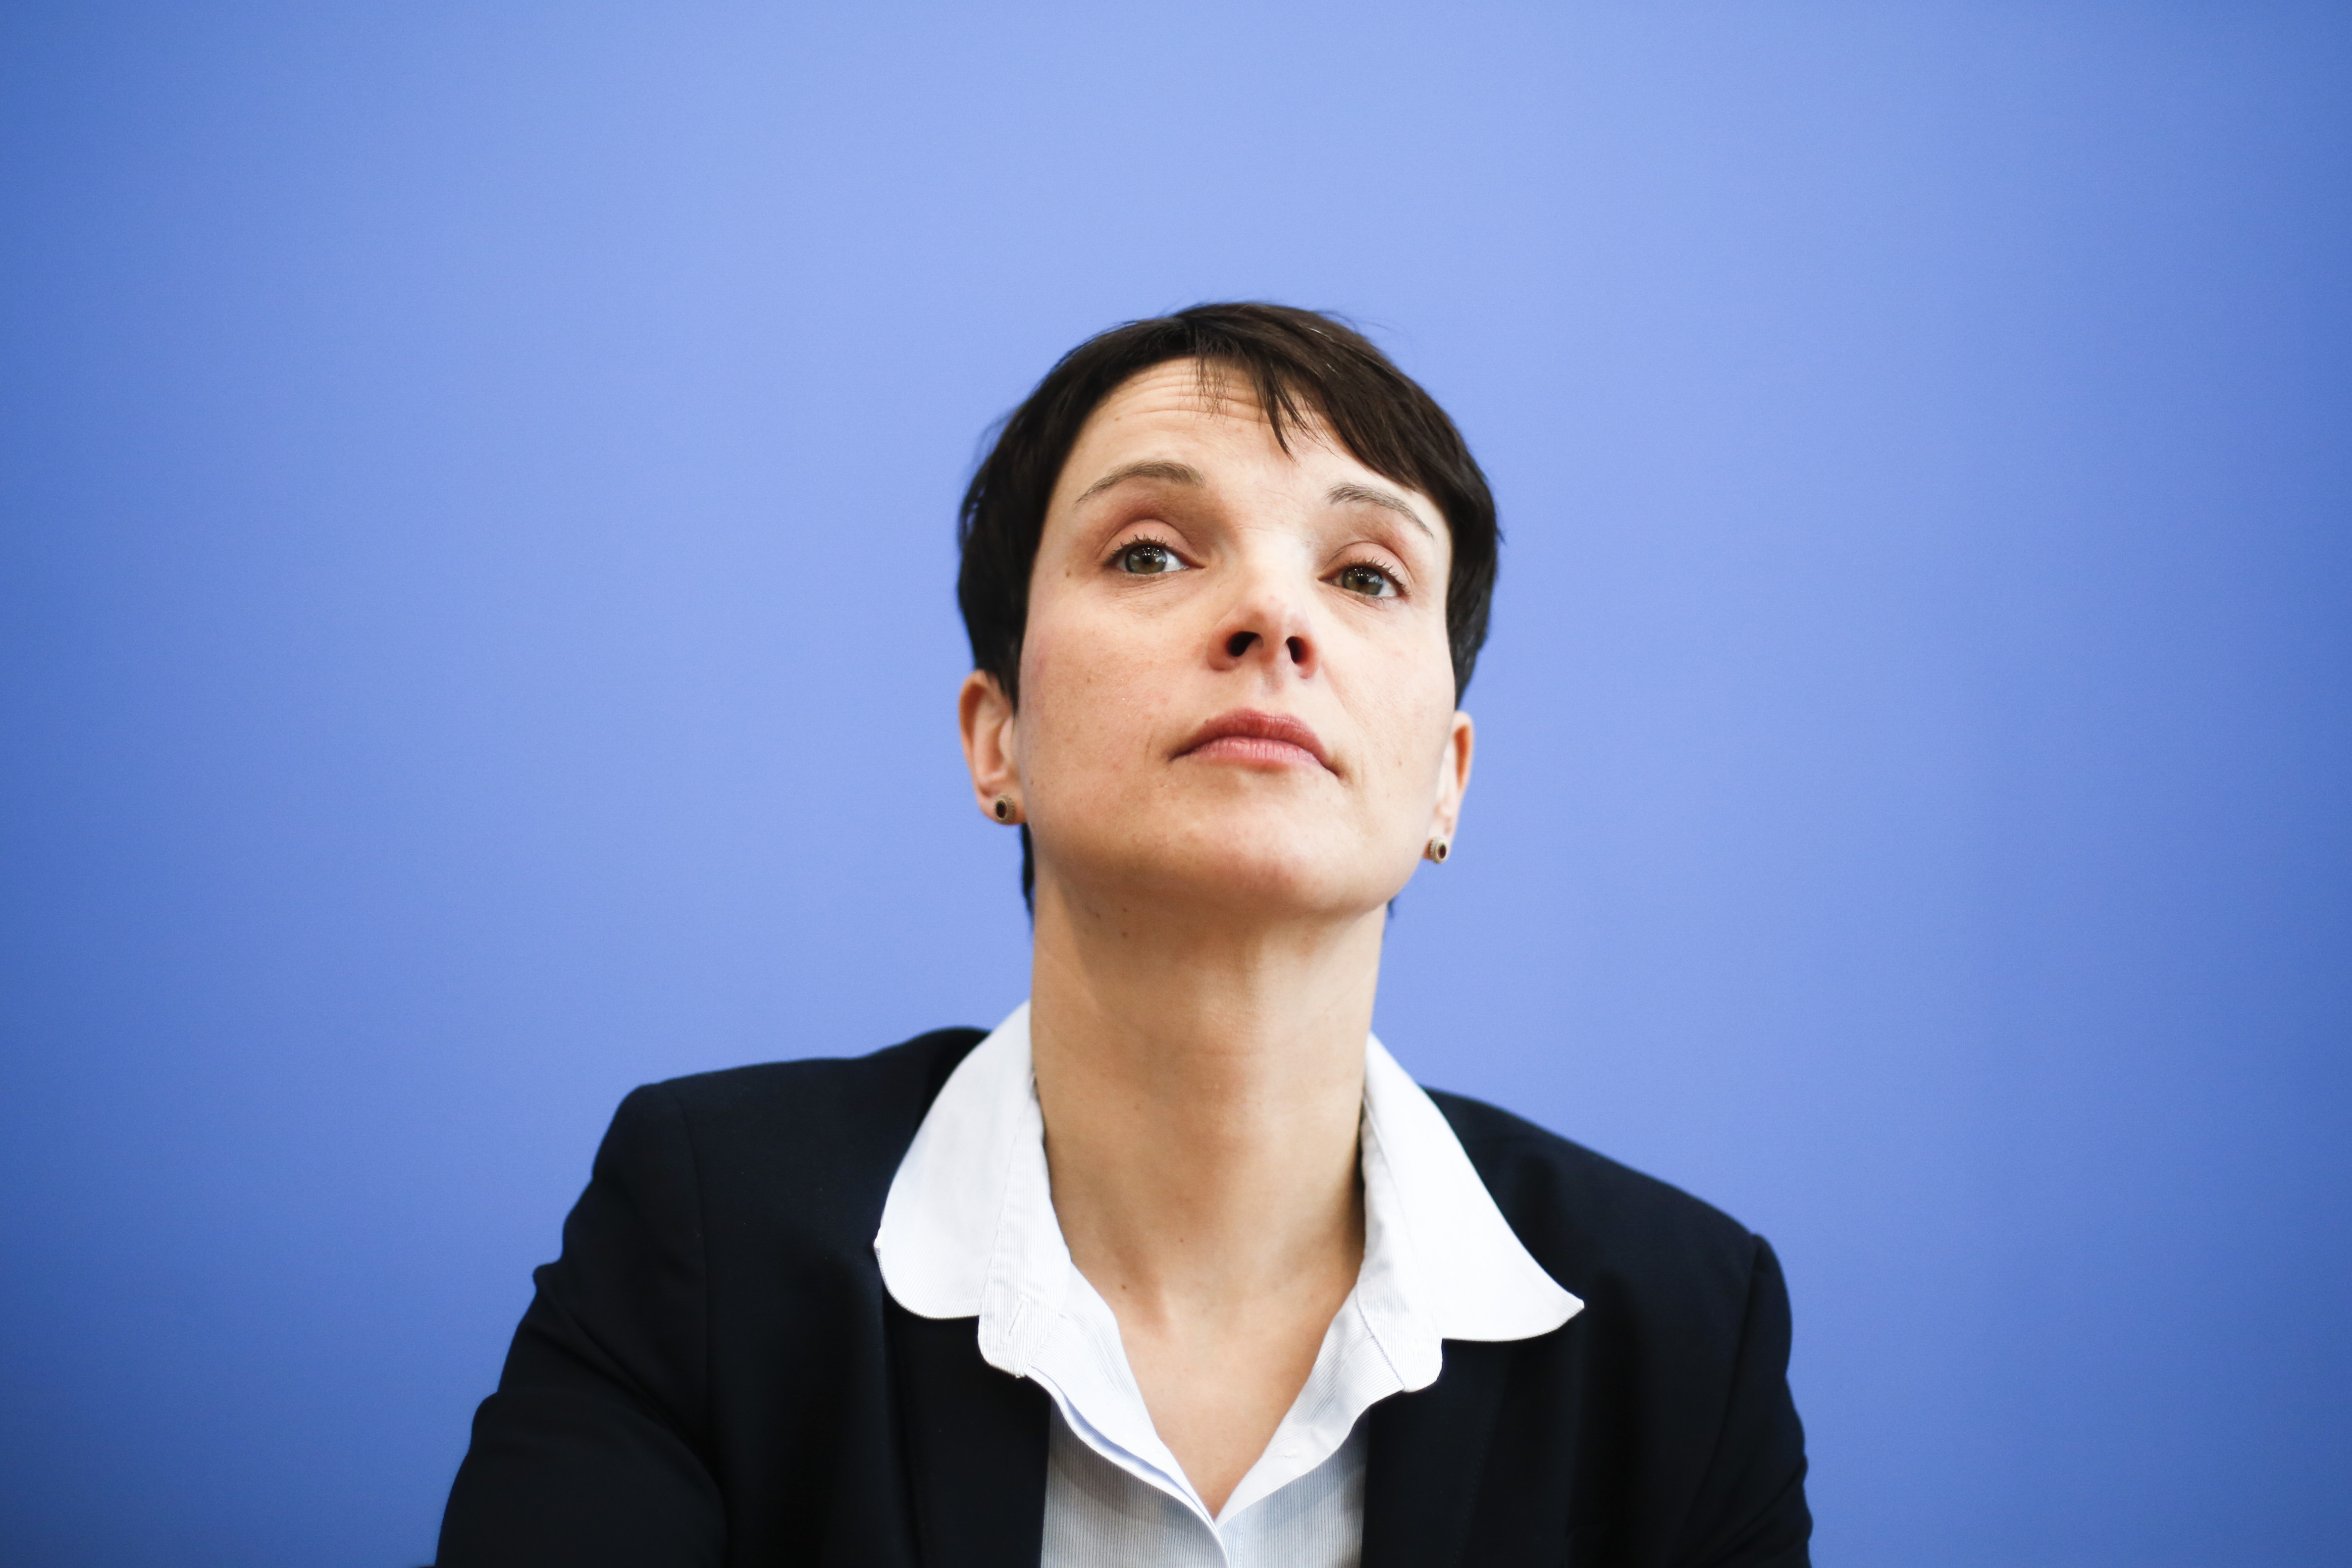 Frauke Petry, chairwoman of the right-populist party AfD, Alternative for Germany, addresses a news conference in Berlin on March 14, 2016.